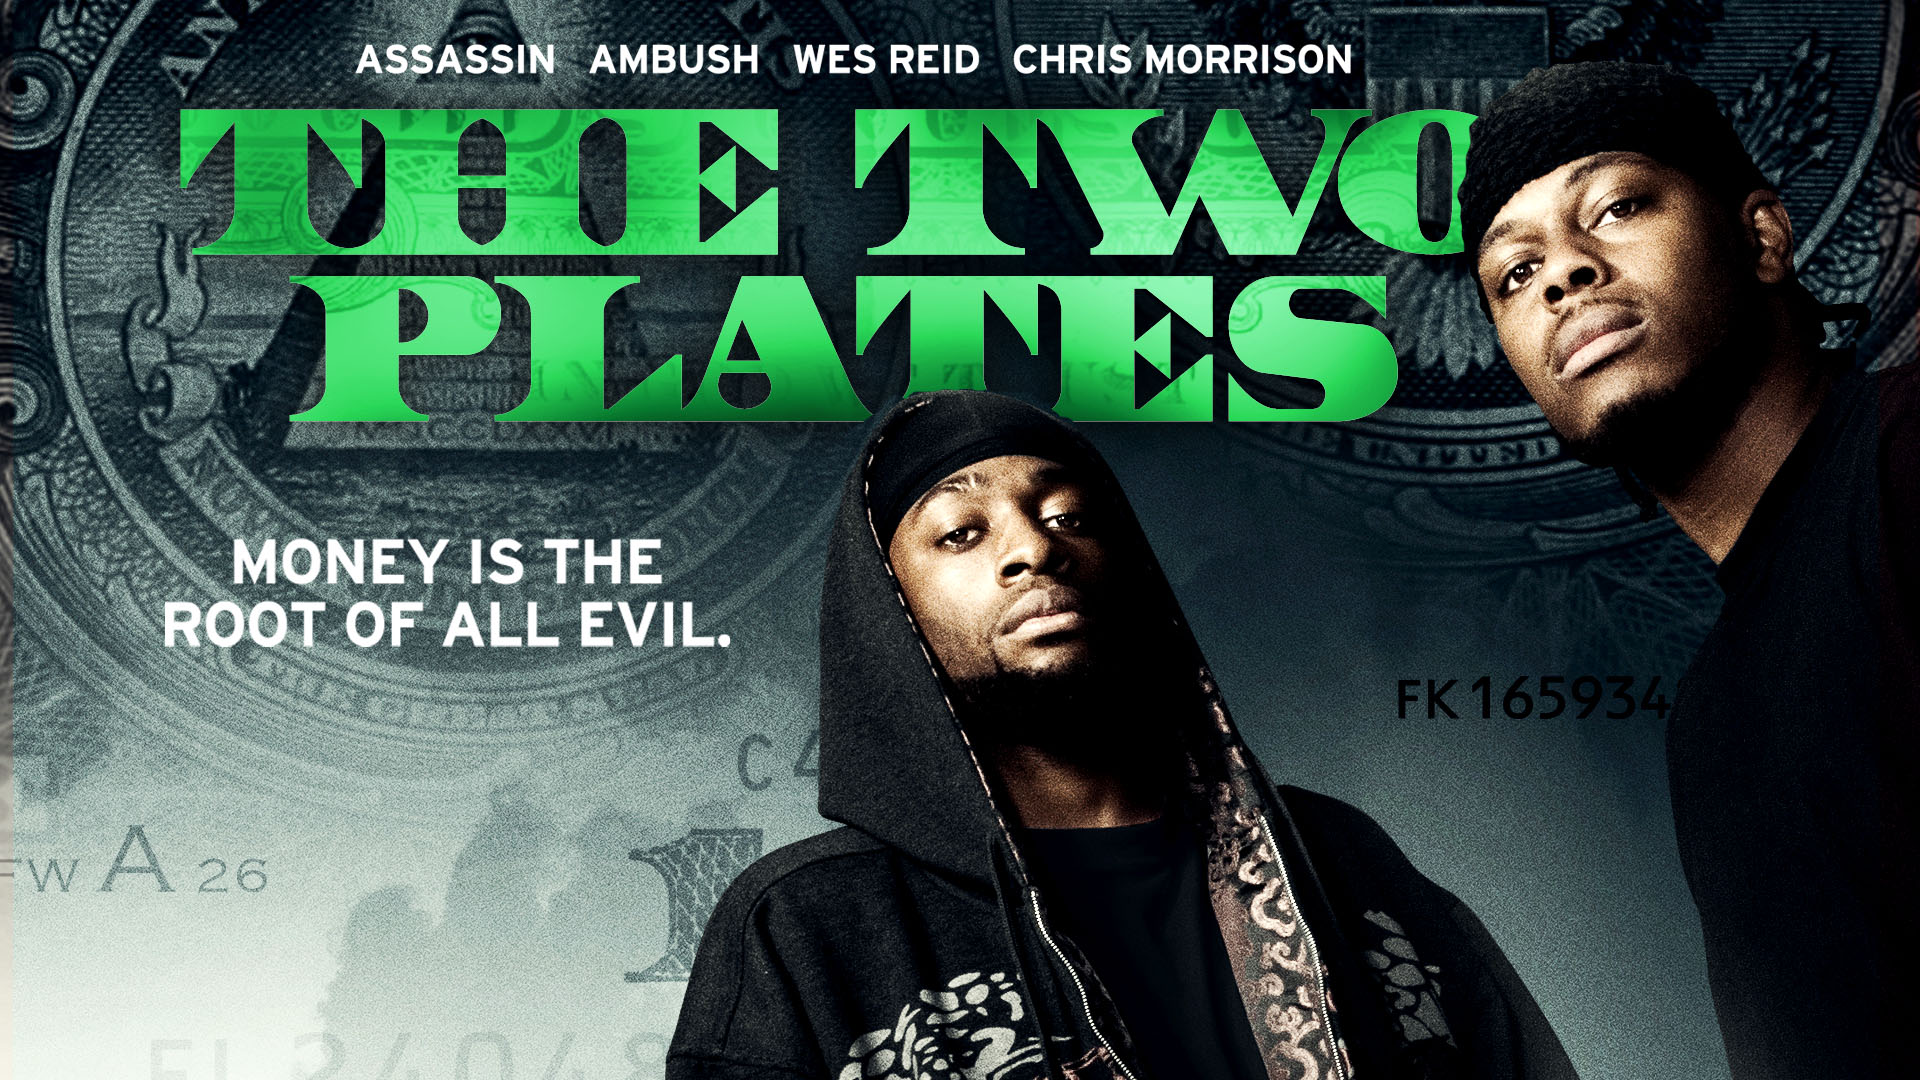 Two Plates, The